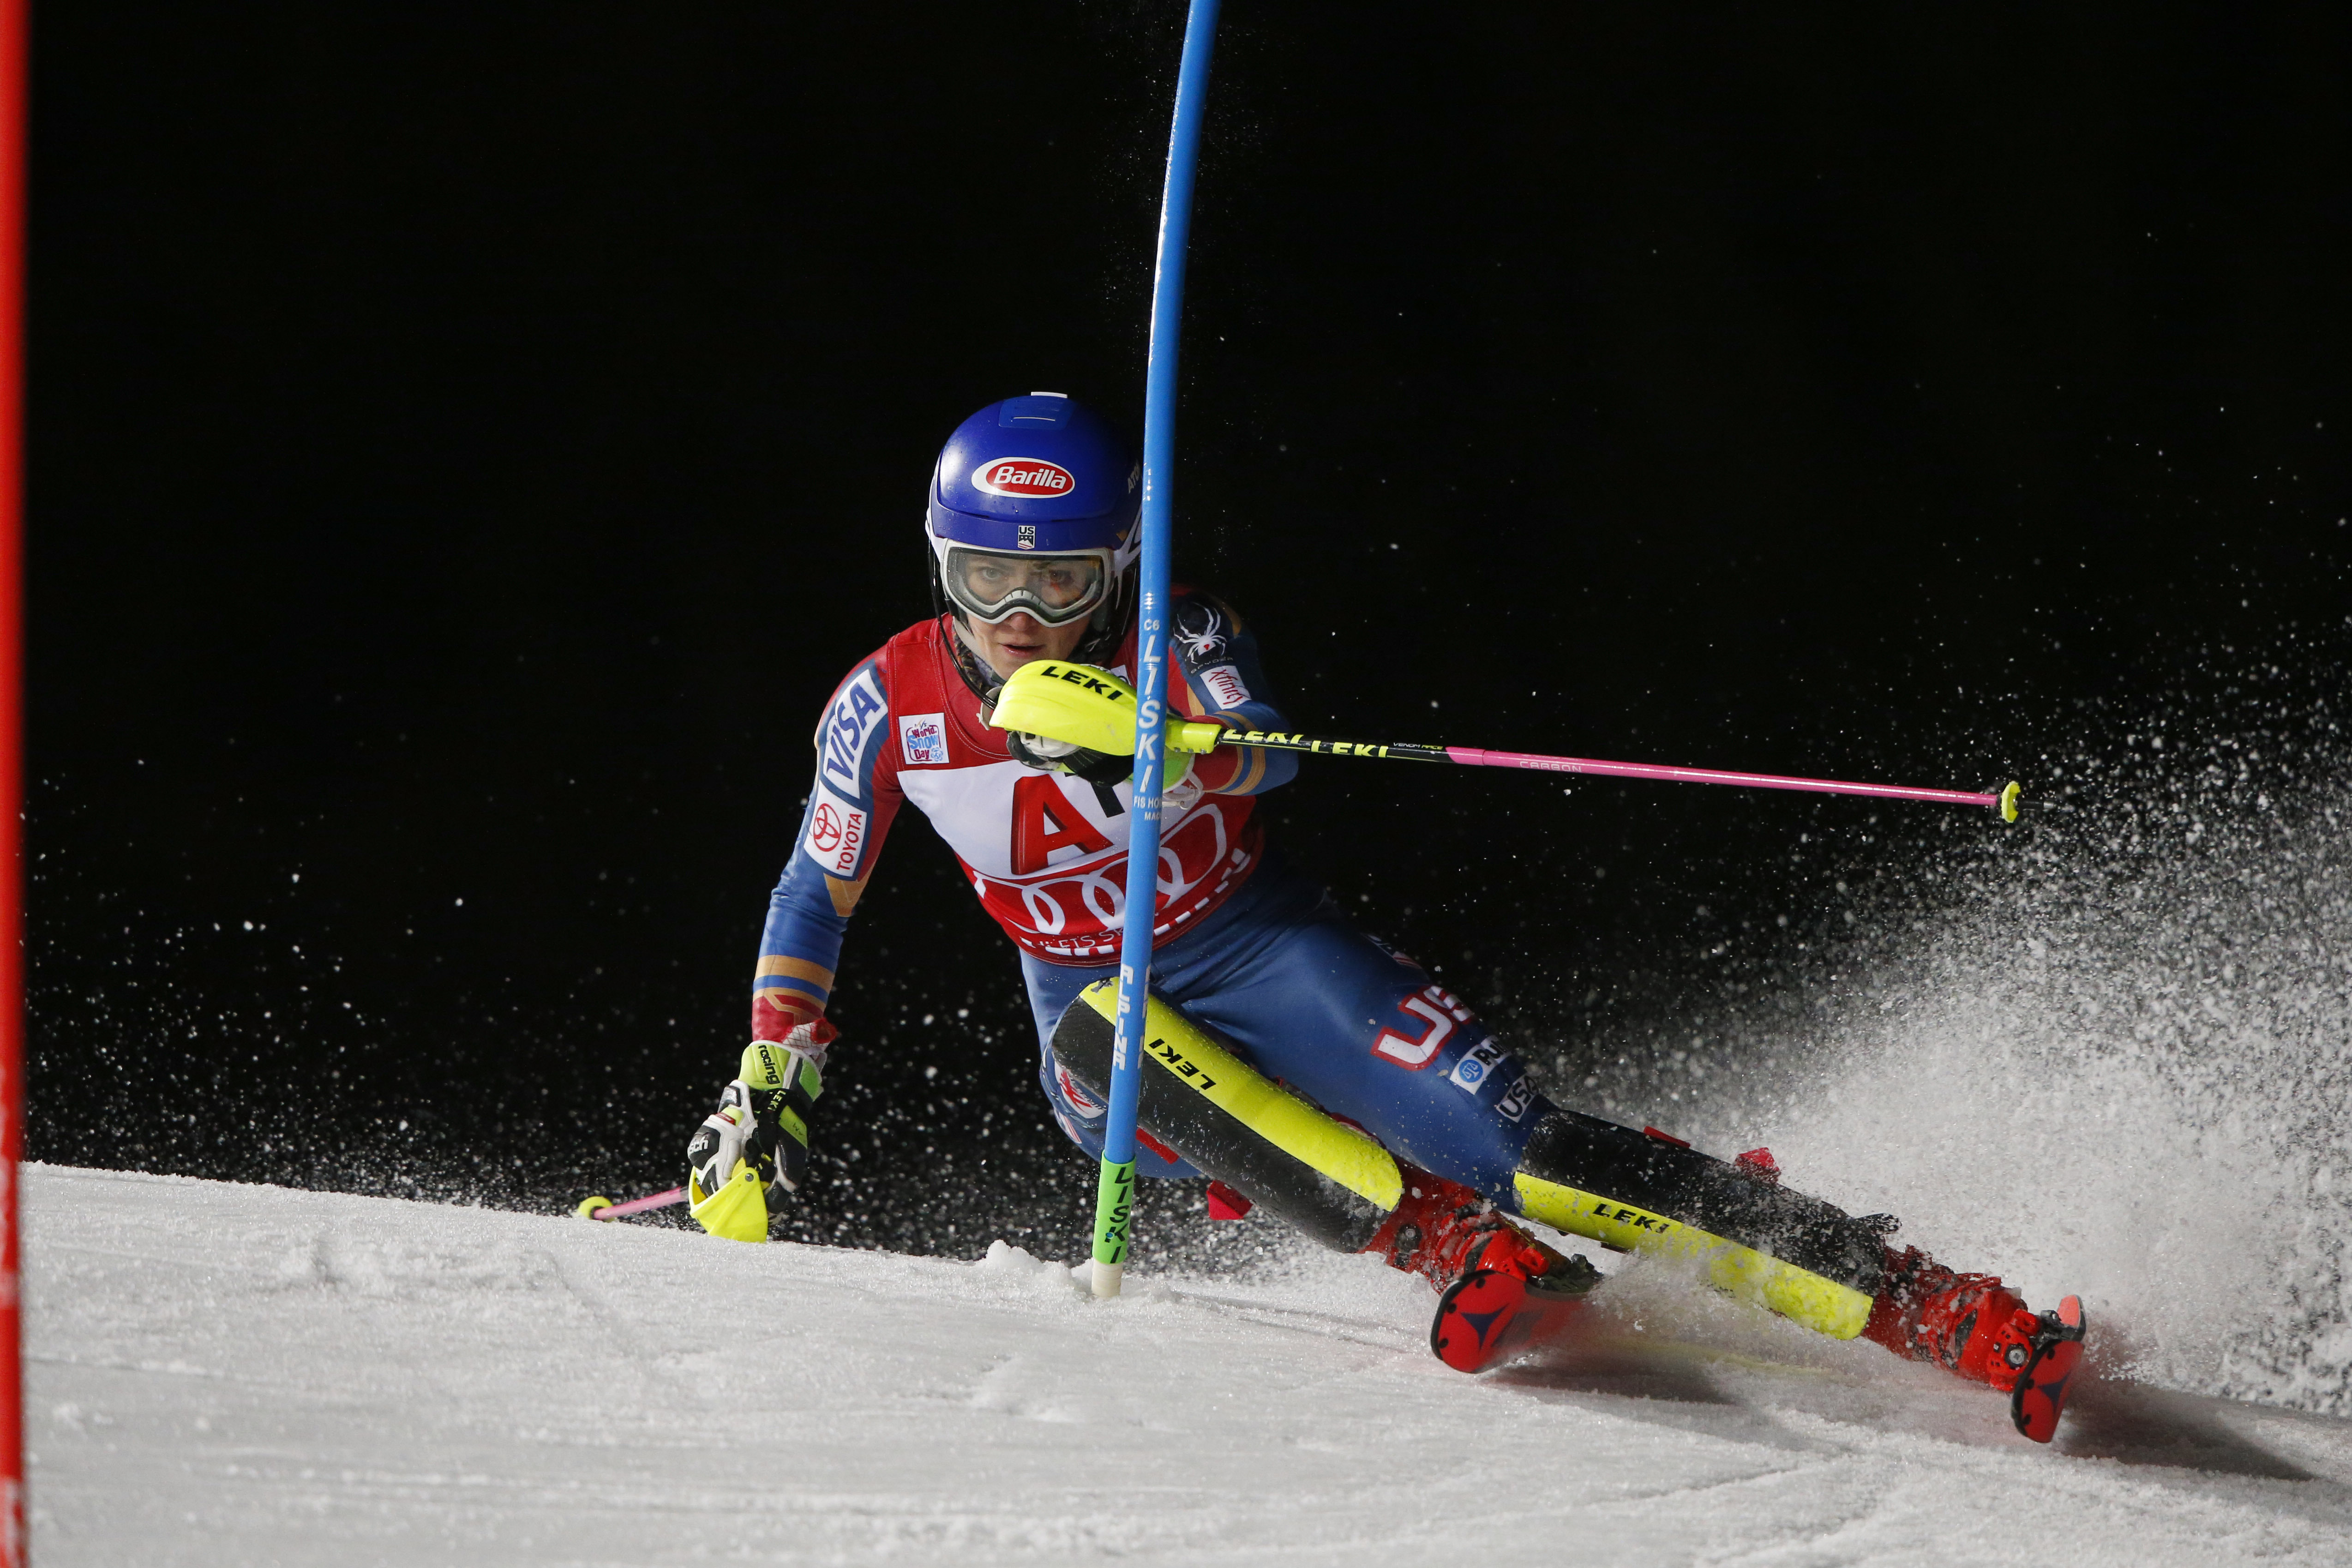 Victory 41 for Shiffrin